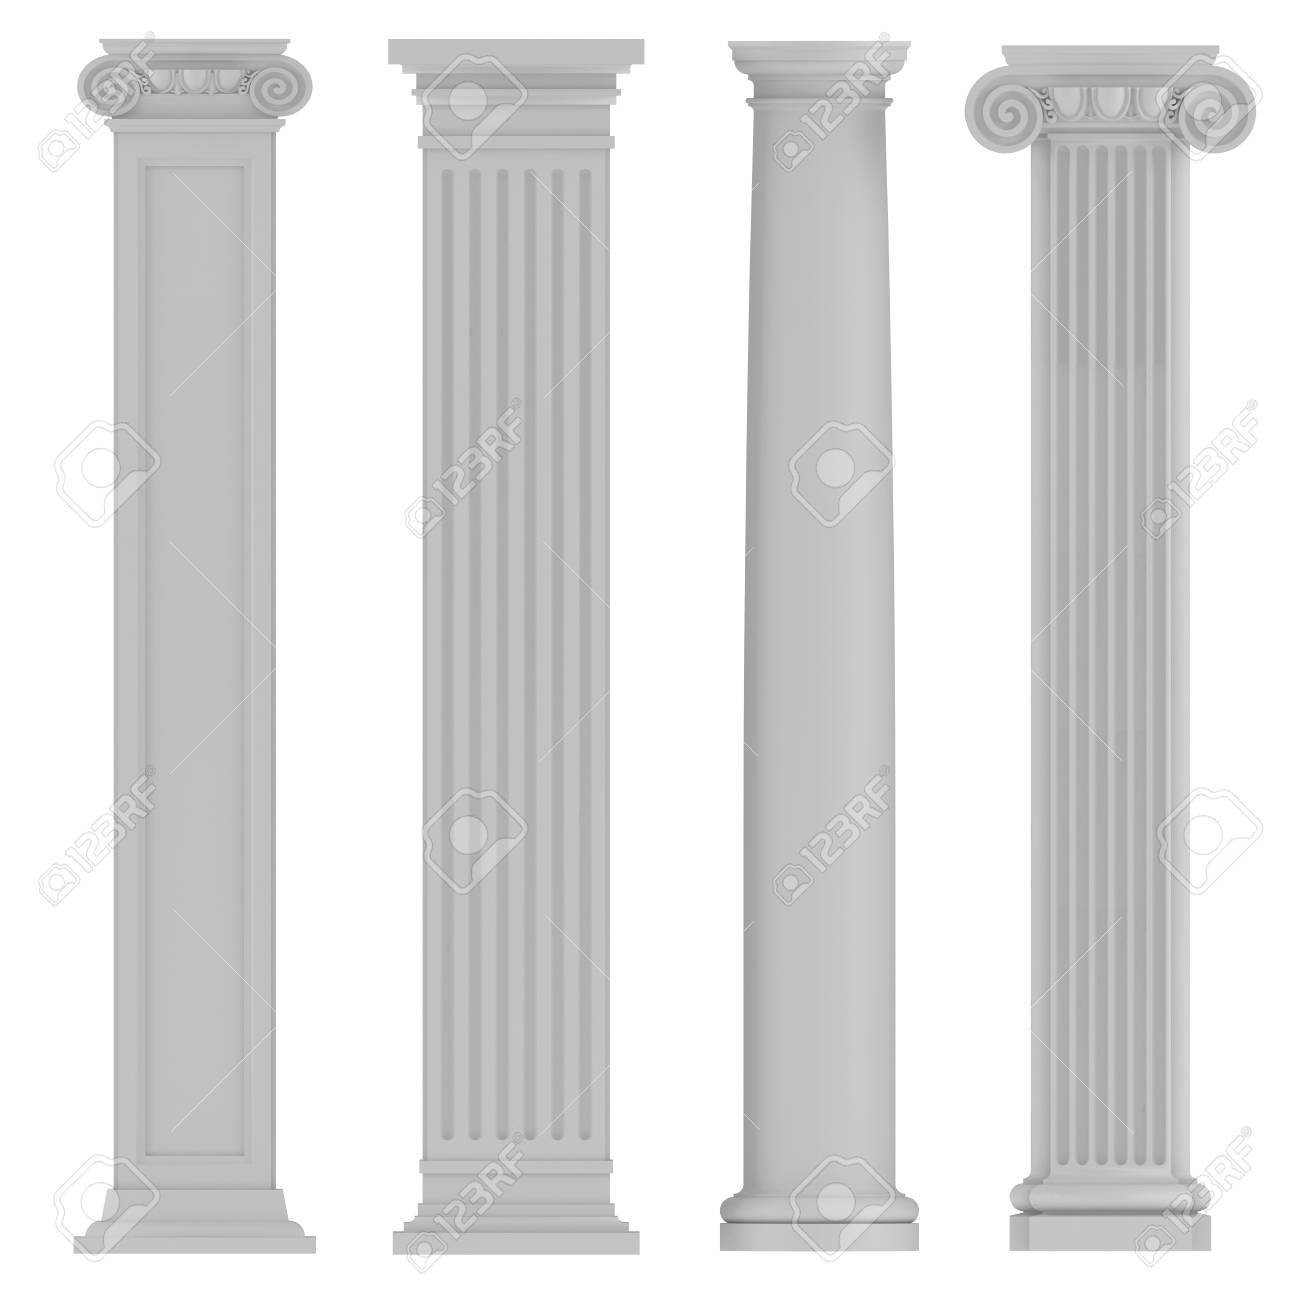 Architectural Classic Columns At The White Background Stock Photo 1300x1300